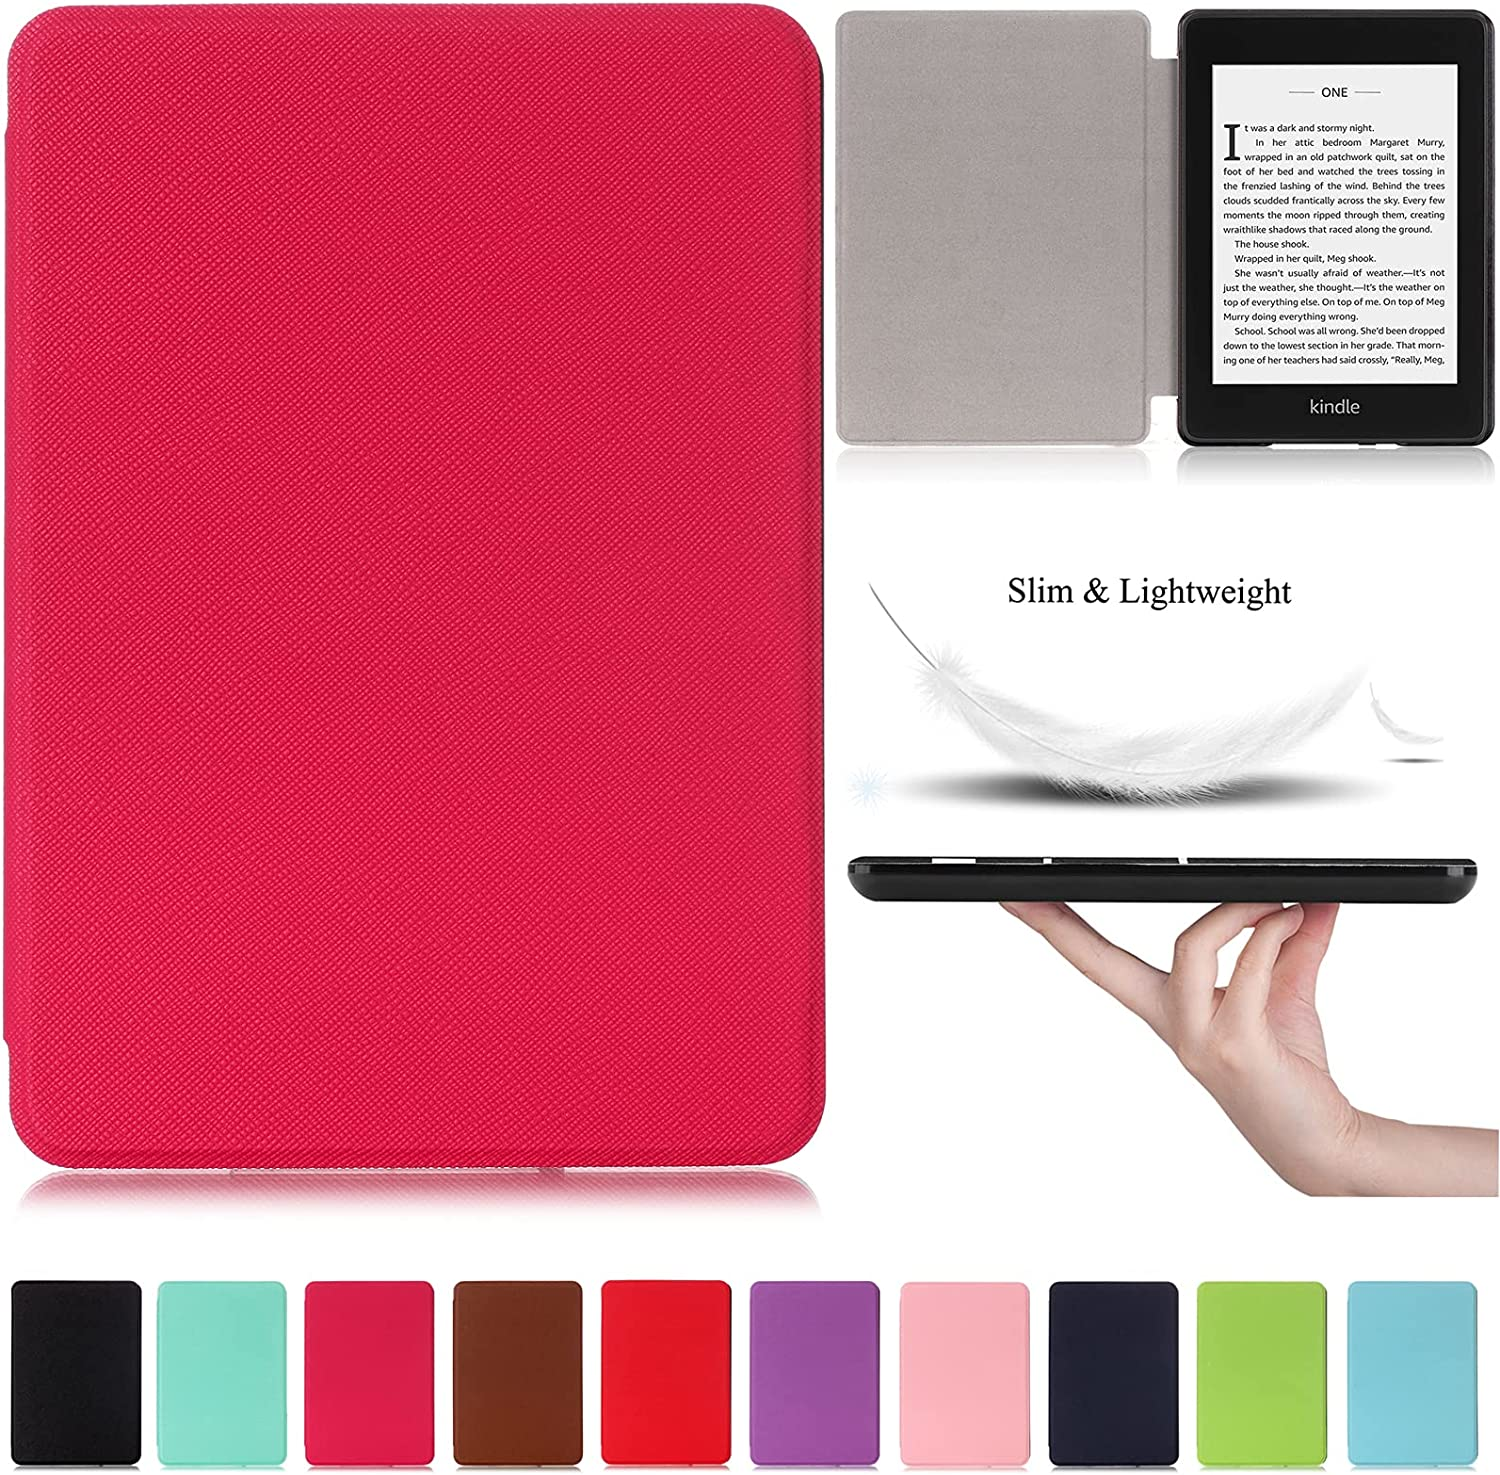 Artyond Case For Kindle Paperwhite sale Ranking TOP6 10th Generation Lea PU 2018